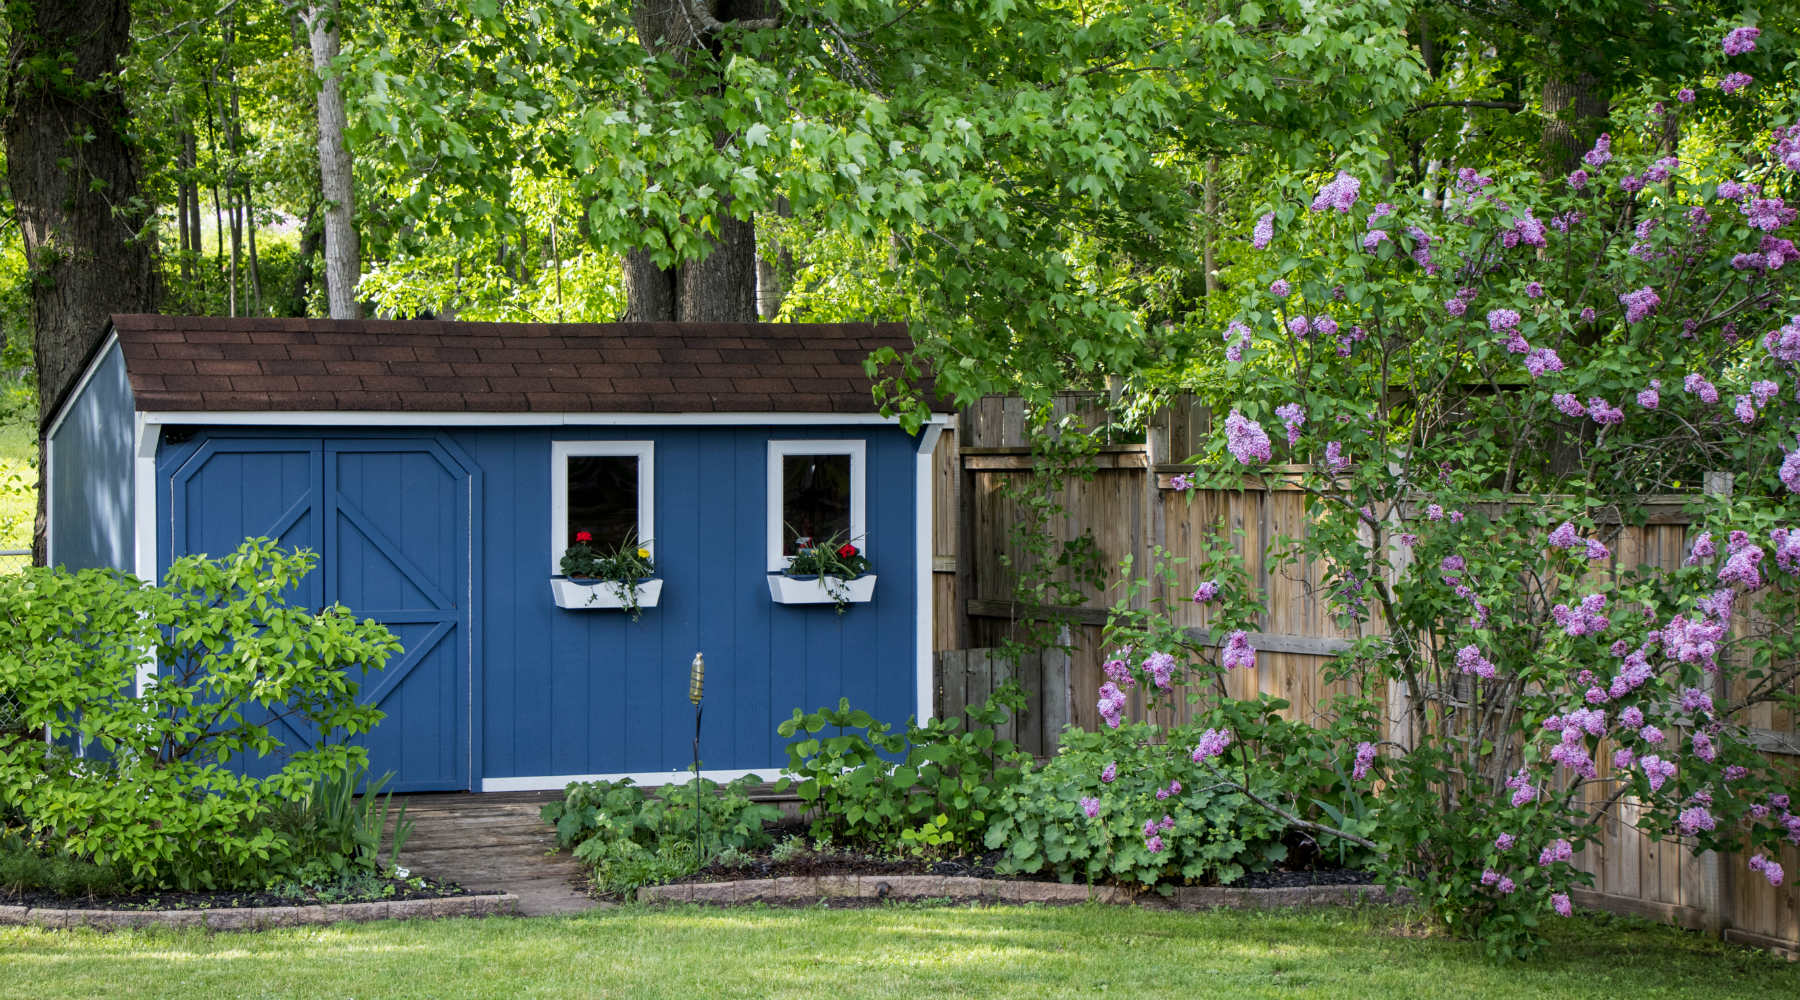 Blue shed backyard with lilacs